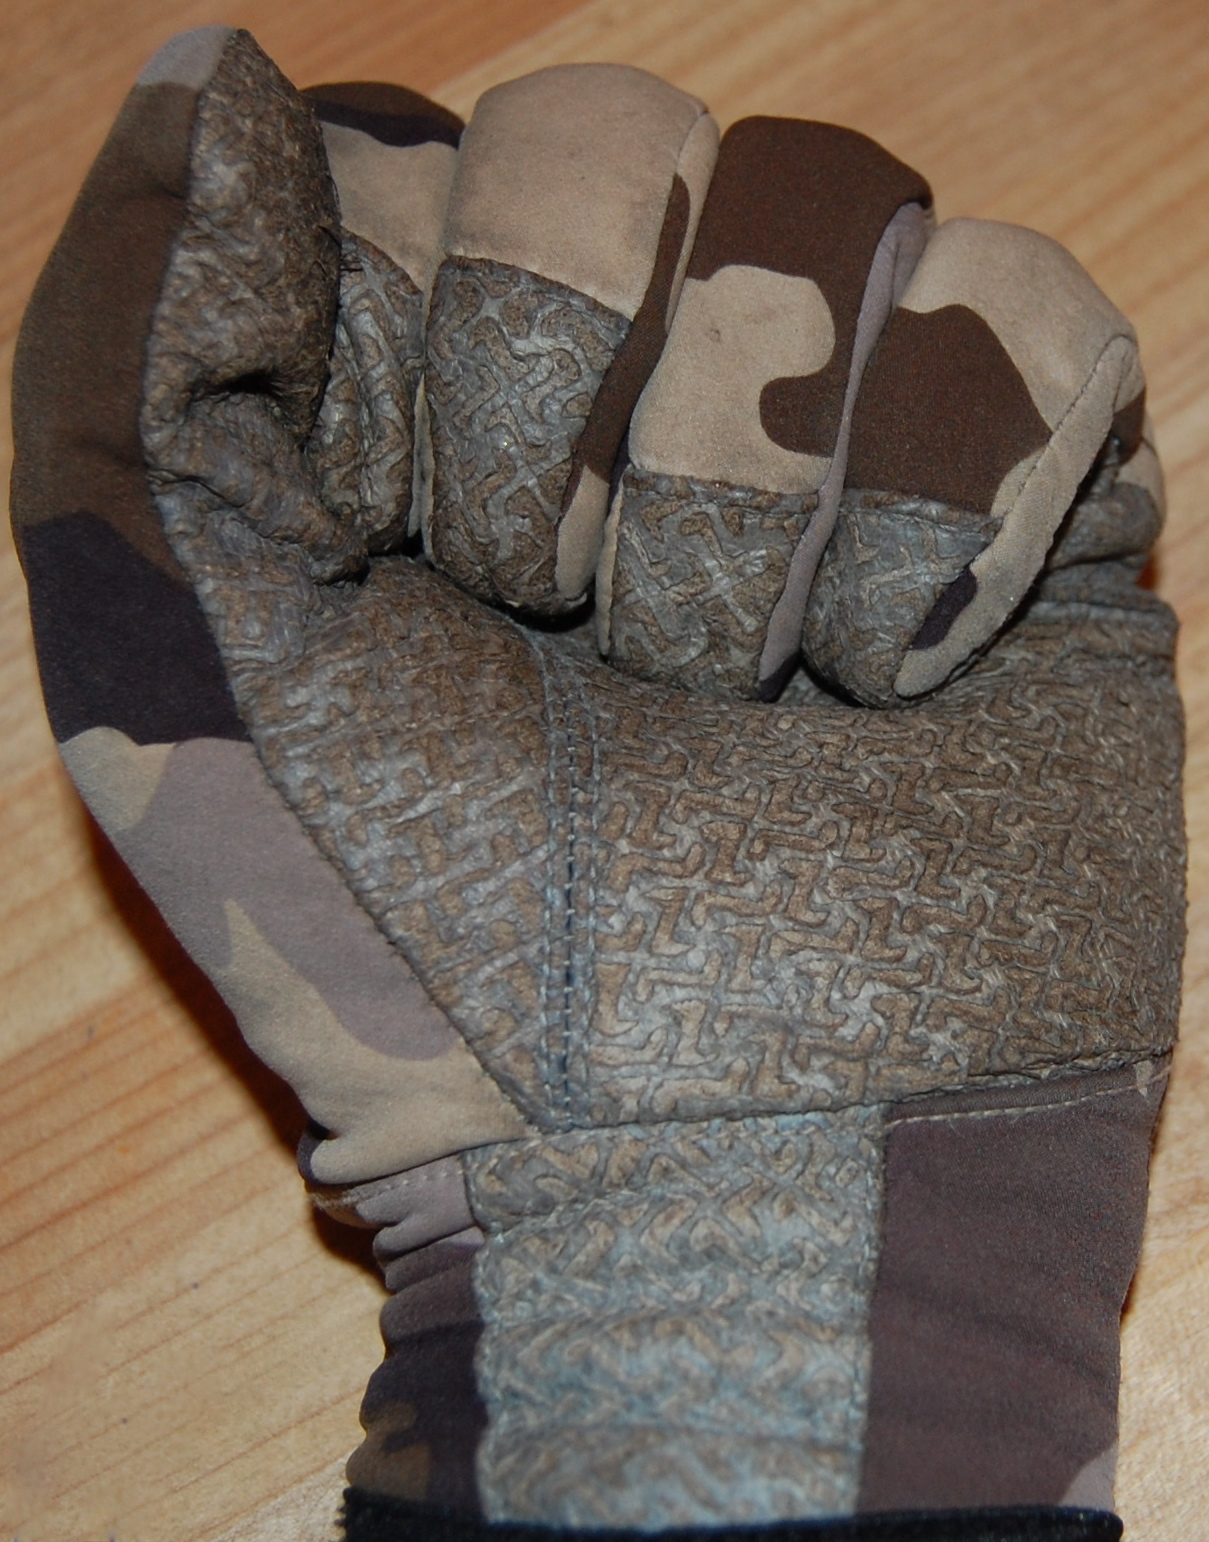 Pittards ladies leather gloves - Glove Prototype After Testing Kuiu Zx Test Pro Pittards Leather Batting Gloves